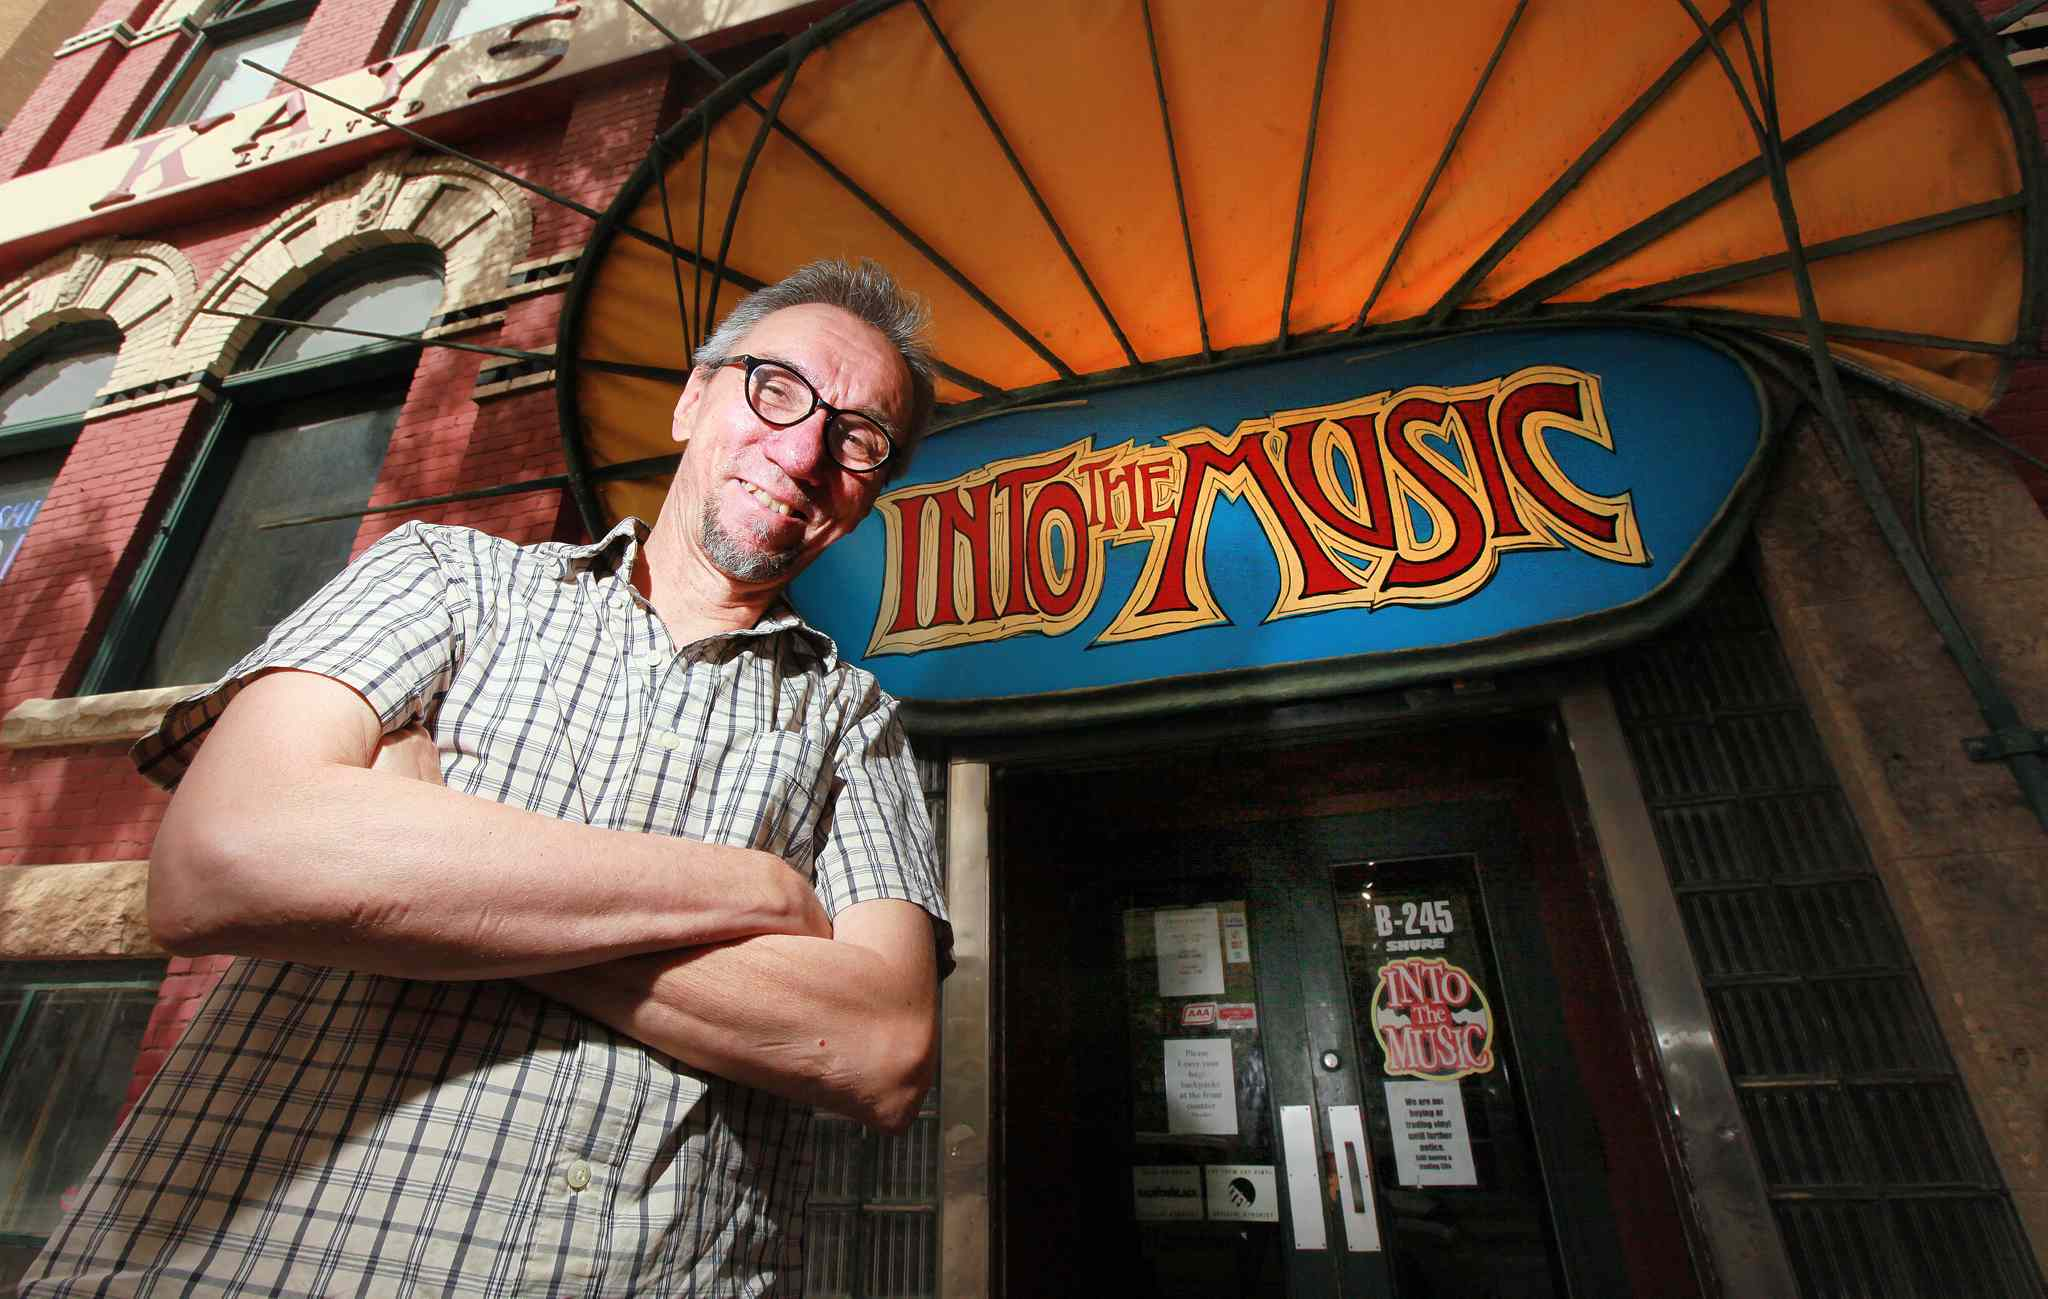 Greg Tonn's store Into the Music is one of Winnipeg's oldest and most loved used record stores, with a huge selection of merchandise and a loyal customer base.